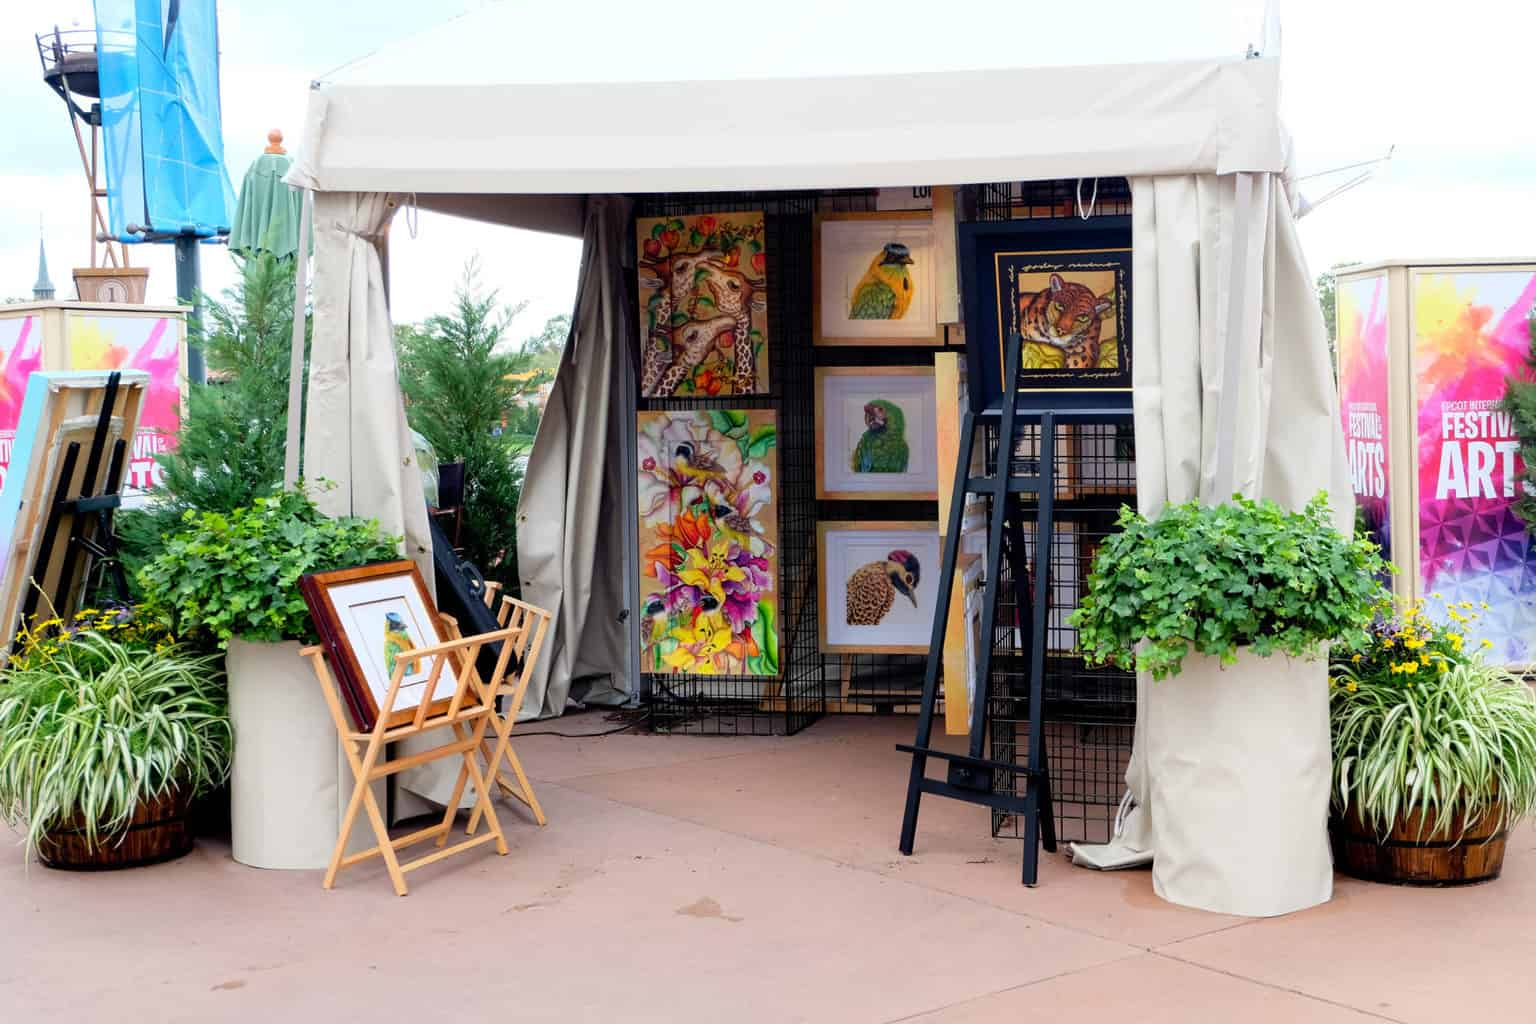 Epcot International Festival of the Arts: 7 Things To Do